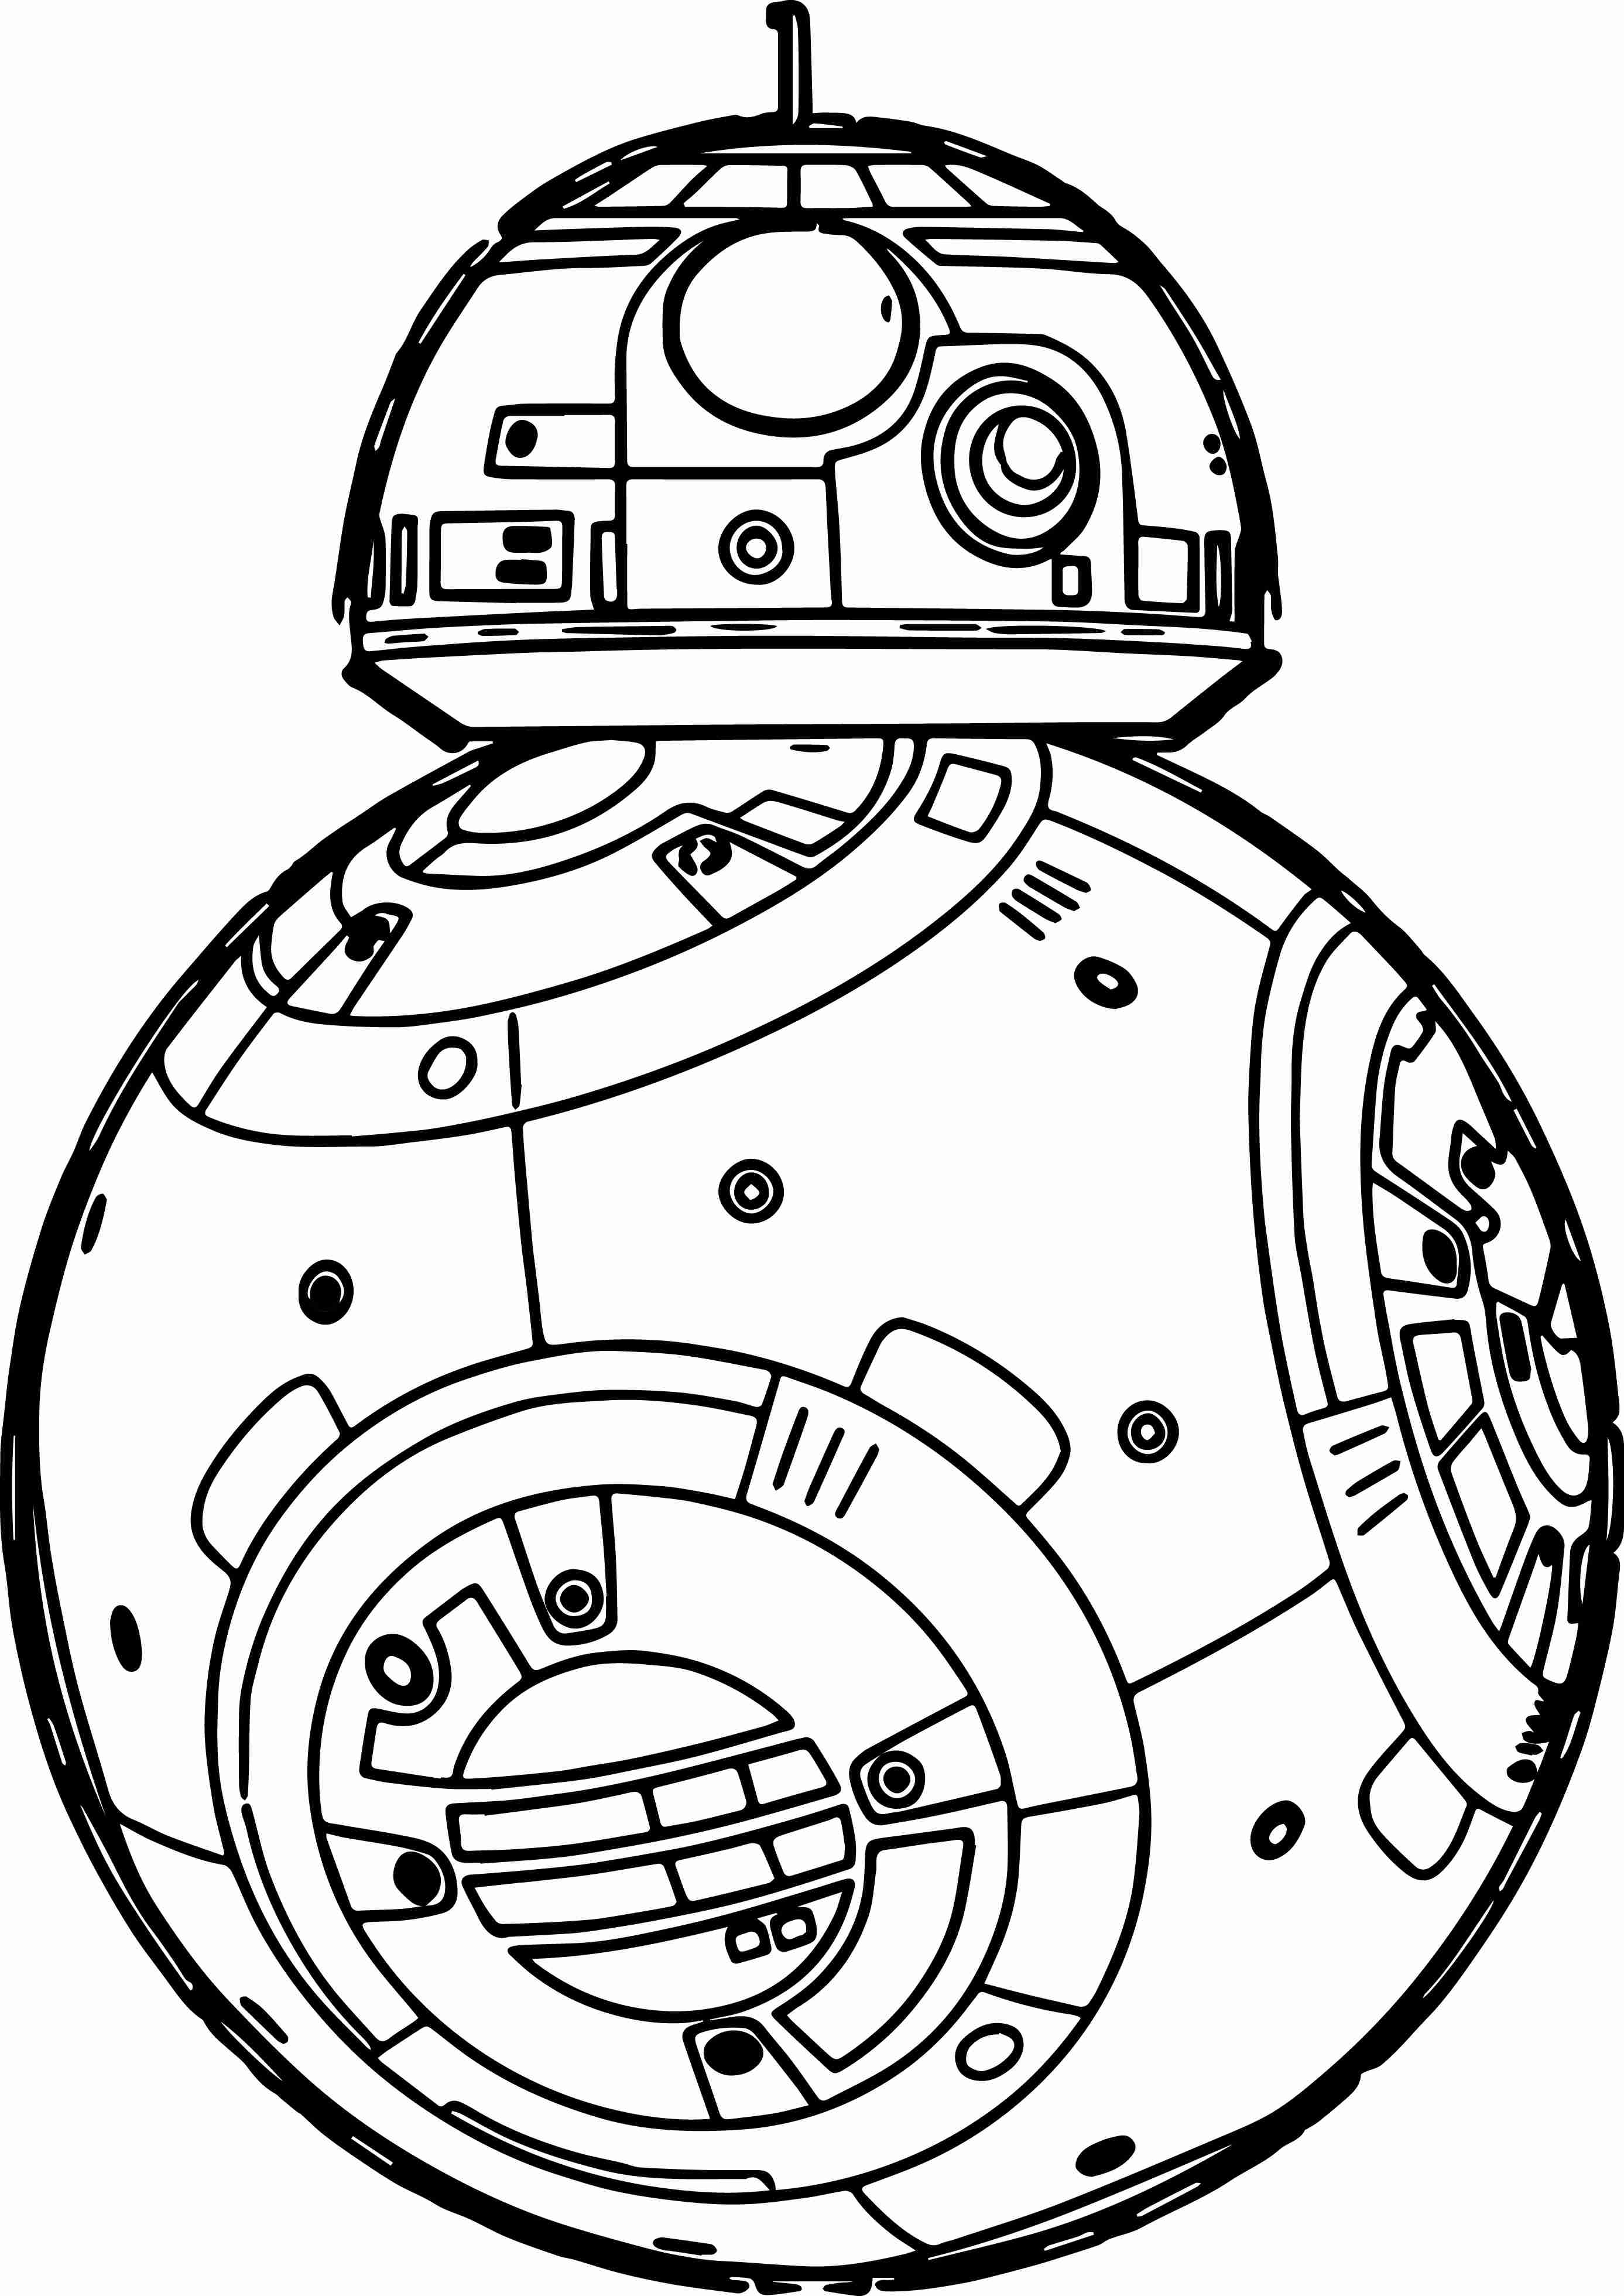 star wars free coloring pages coloring pages star wars free printable coloring pages star wars coloring free pages